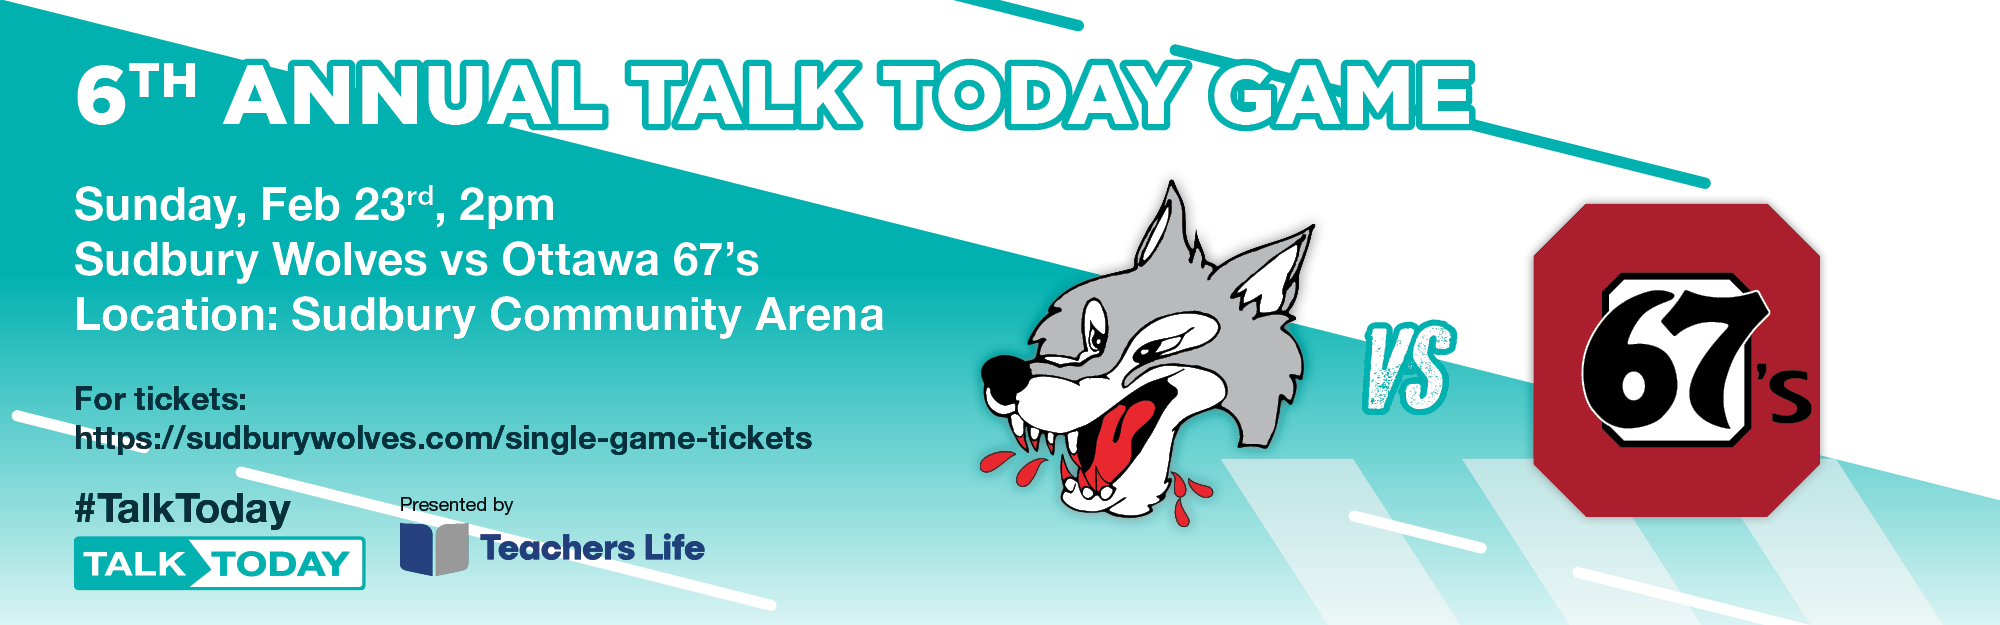 Sudbury Wolves to host mental health awareness game in partnership with CMHA Sudbury/Manitoulin, presented by Teachers Life